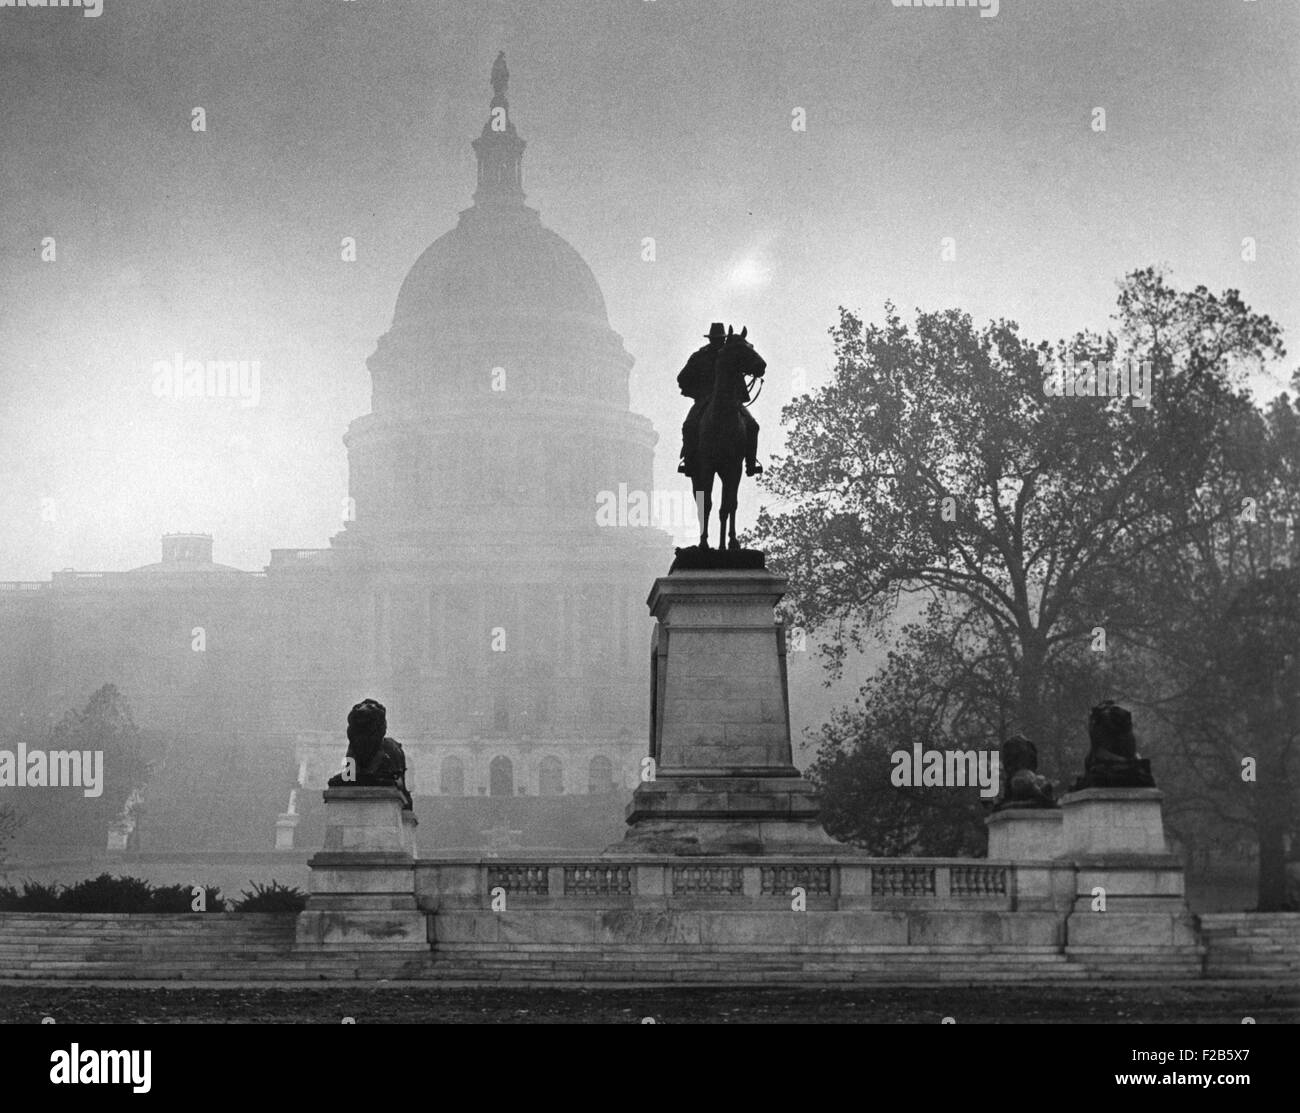 U.S. Capitol on an atmospheric day, Nov. 14, 1953. The statue of Civil War General Ulysses S. Grant, 1922, is the - Stock Image